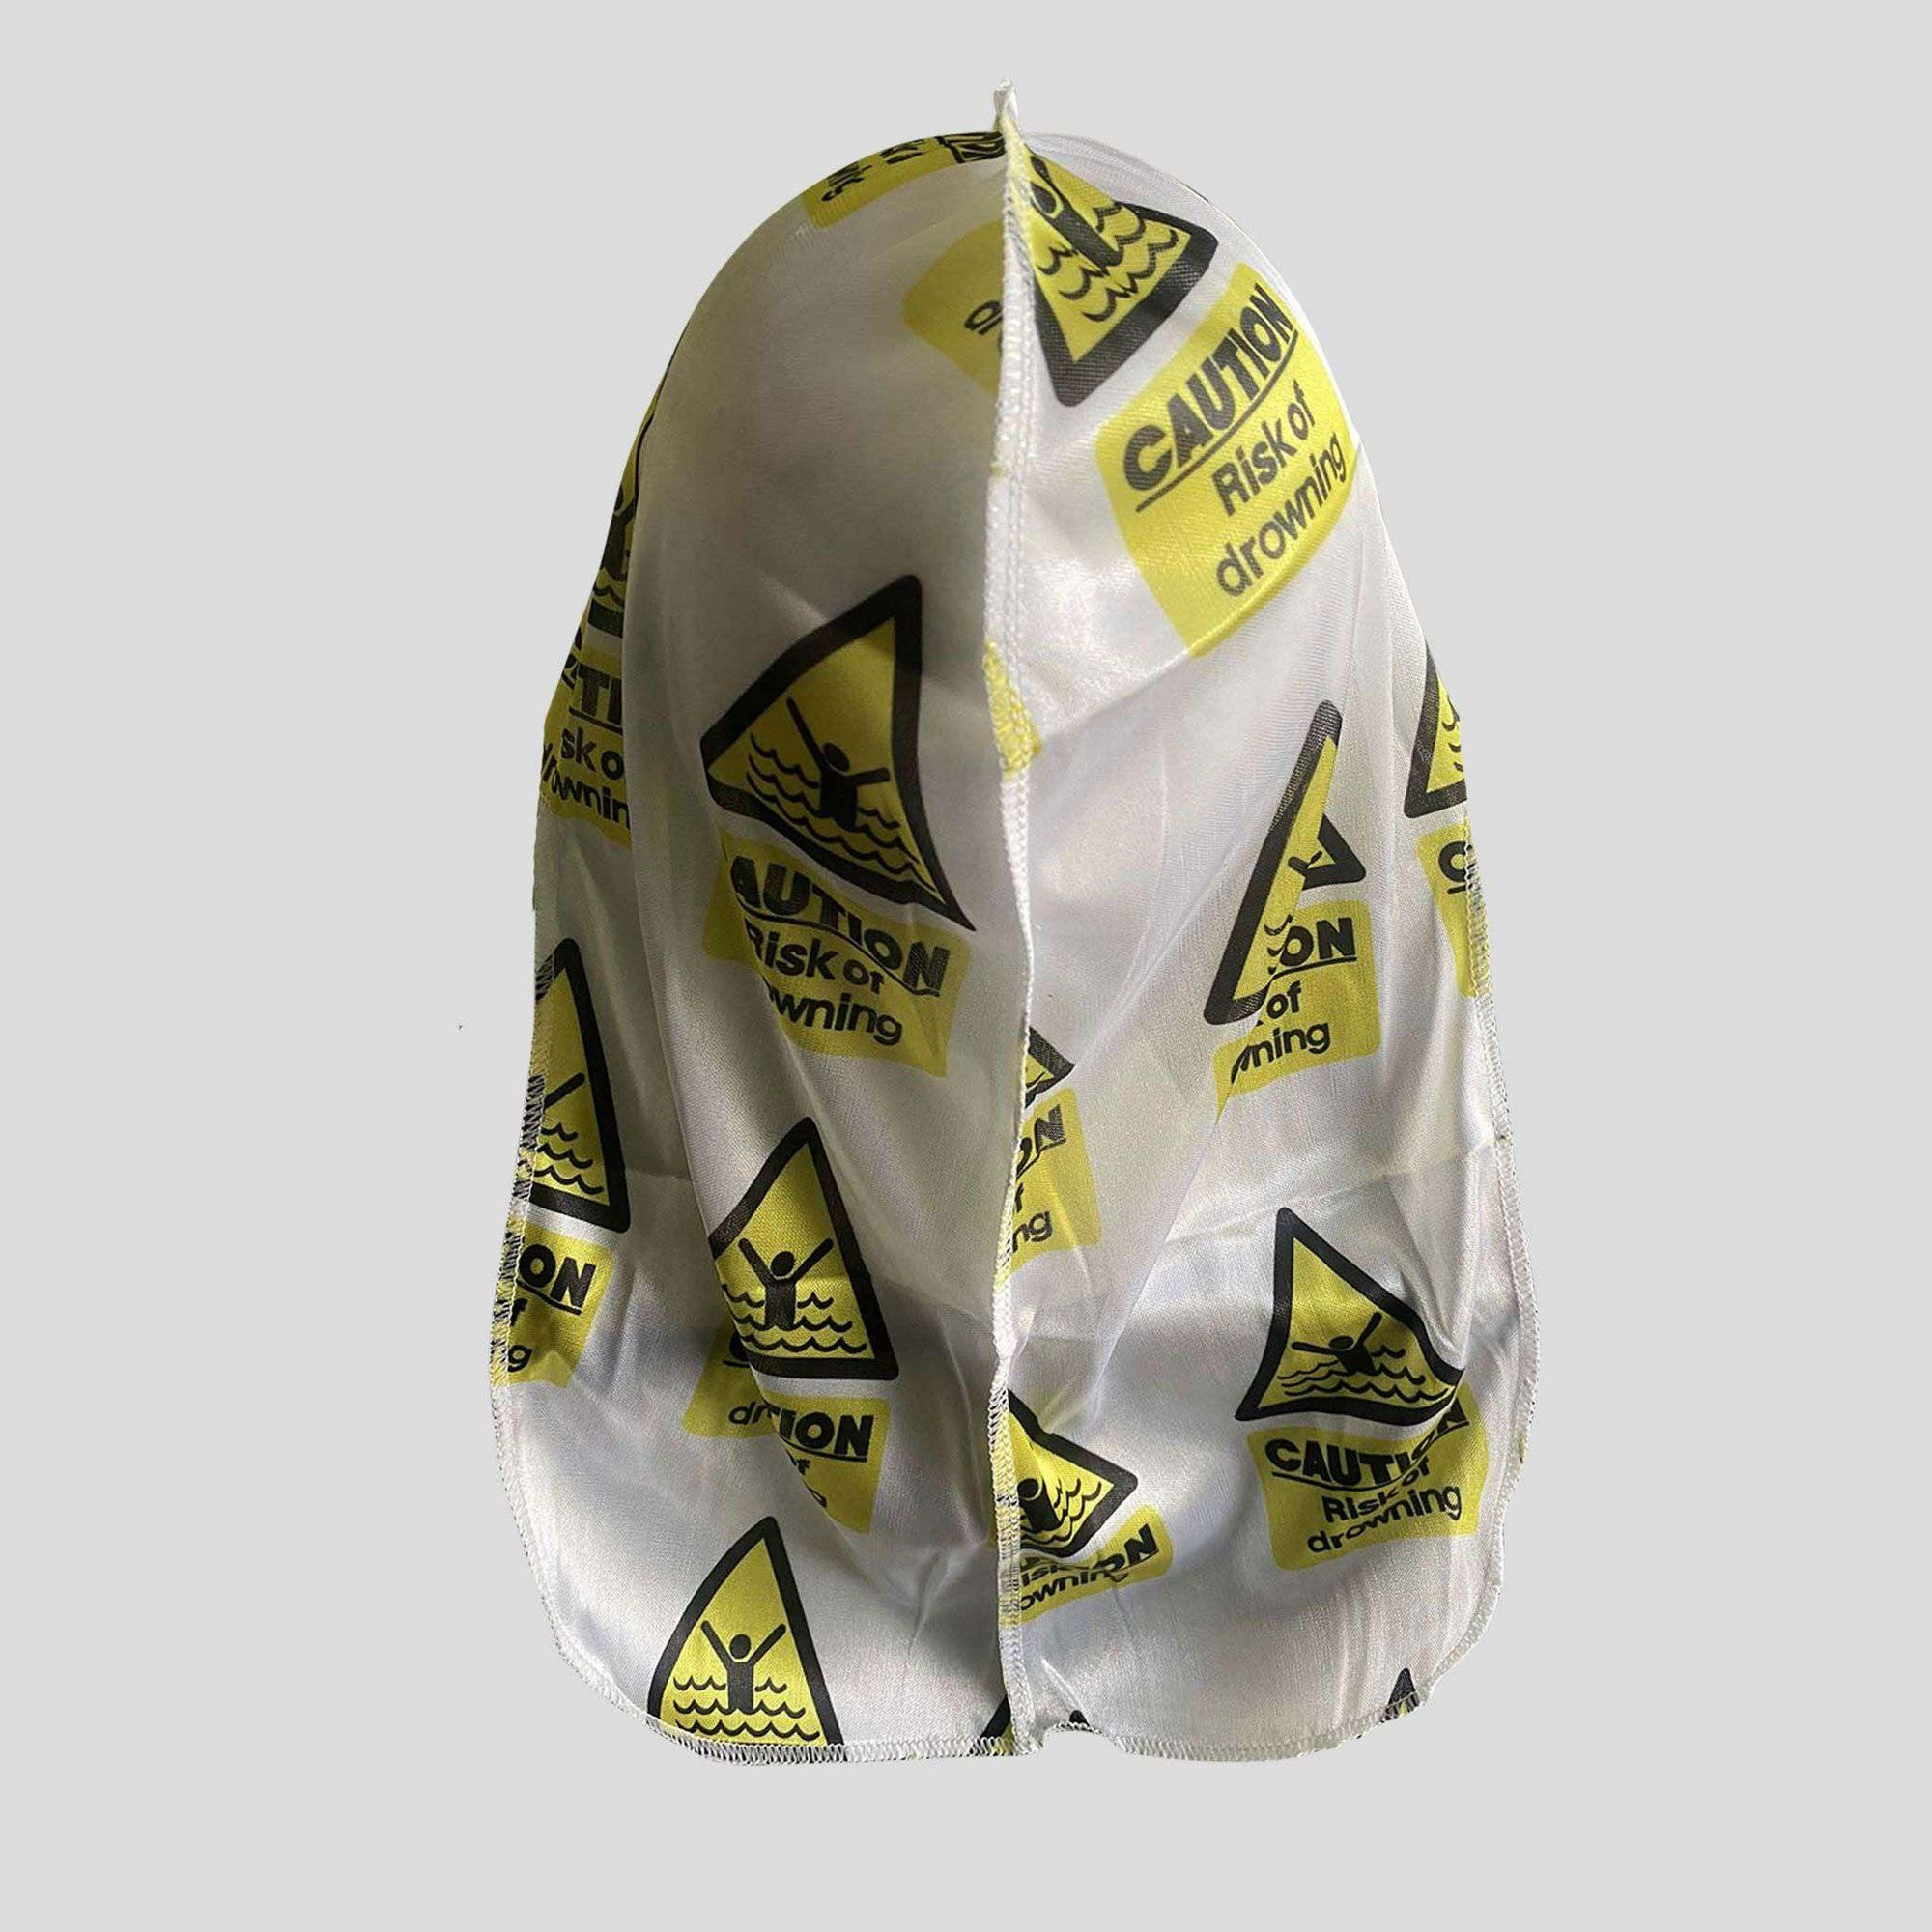 Caution Risk of Drowning Silky Durag - Durag Wave